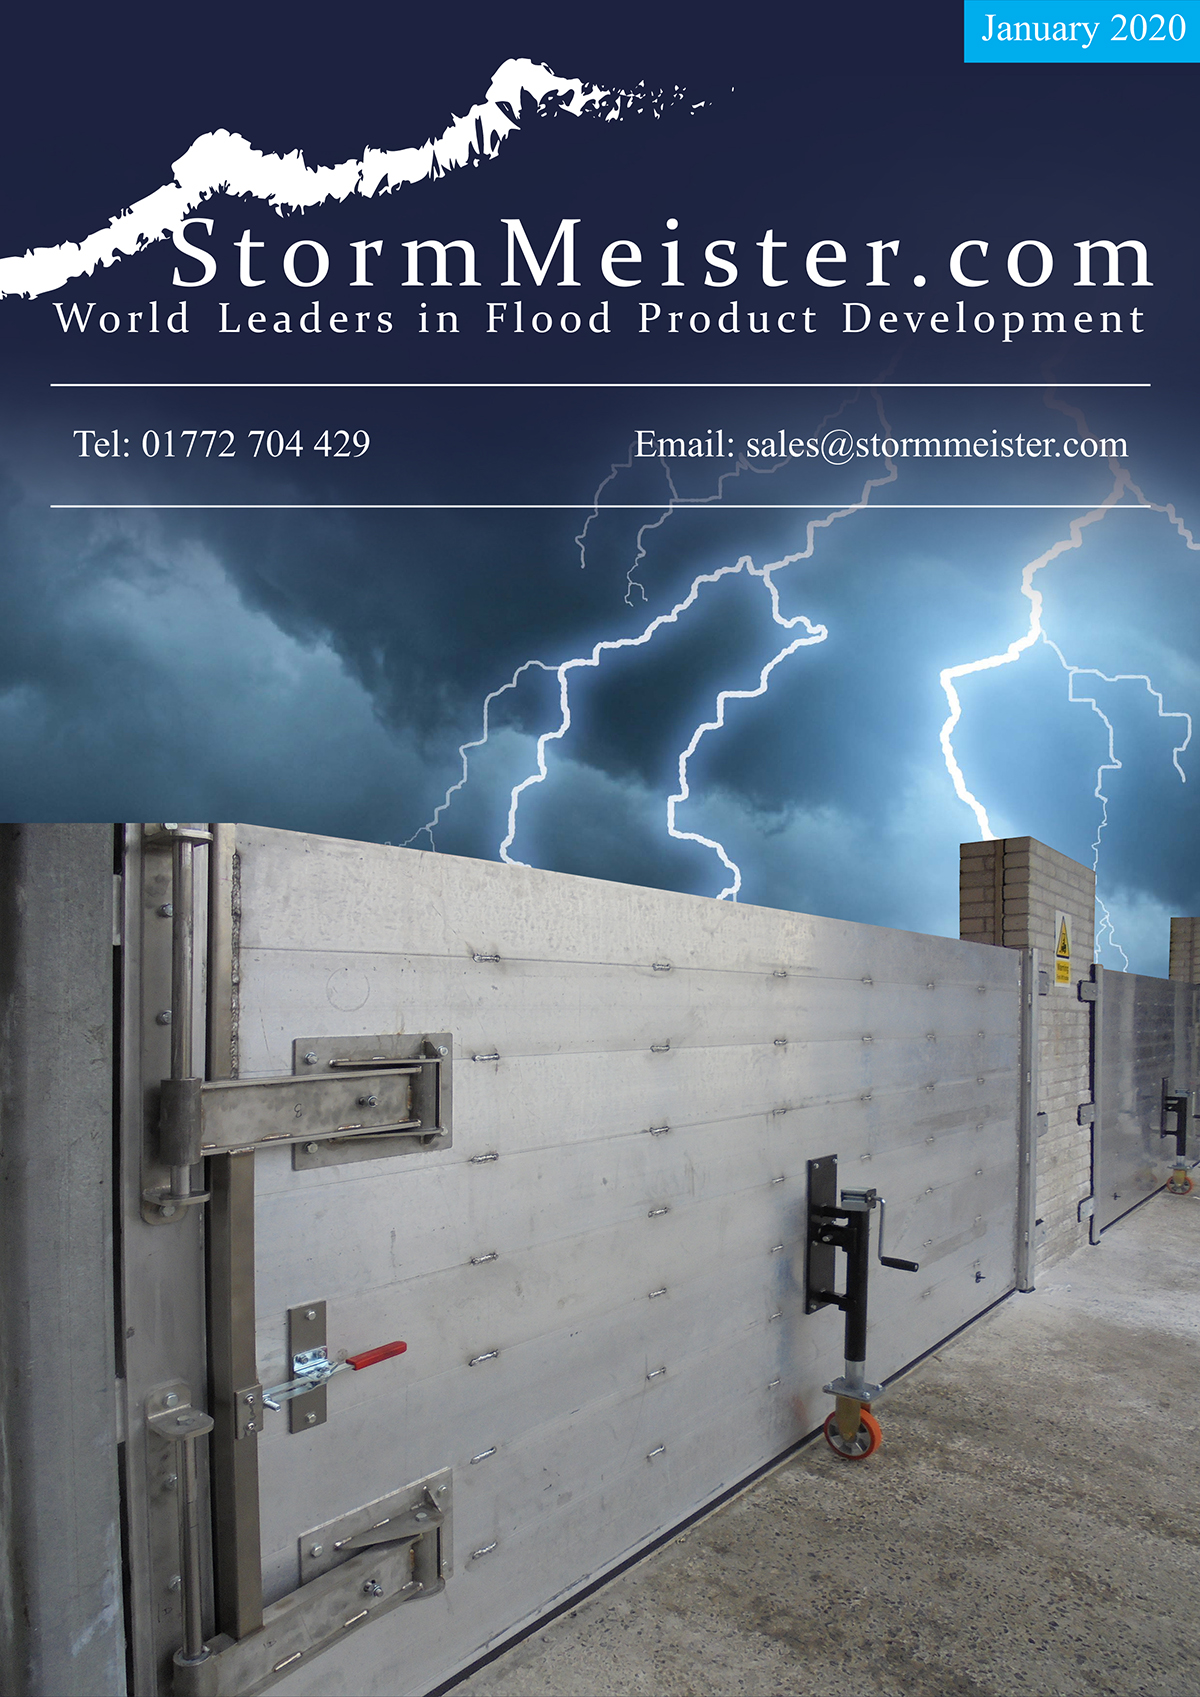 flood protection, StormMeister